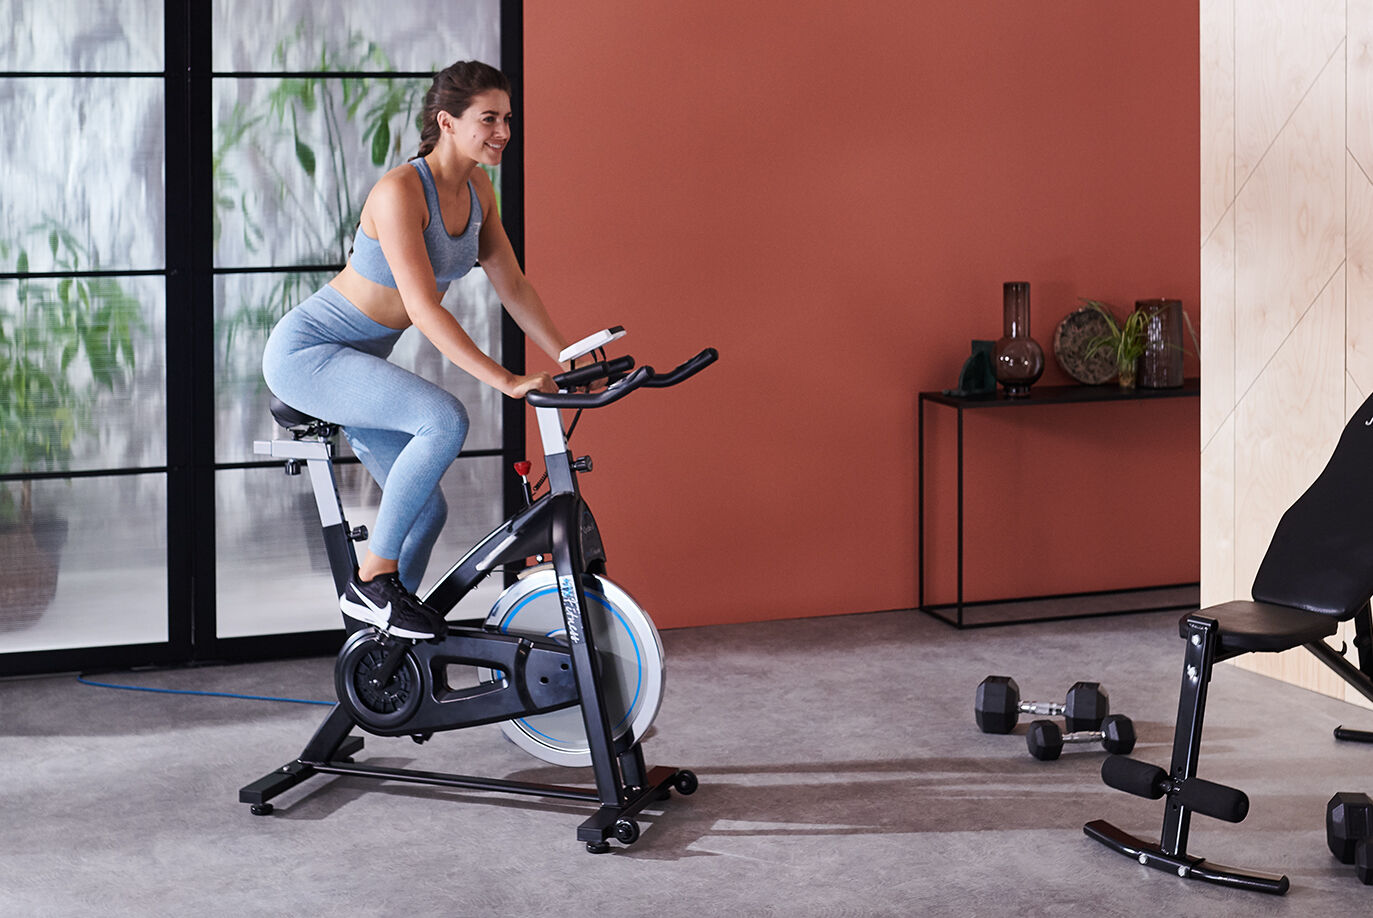 JTX Cyclo 3 Compact Exercise Bike